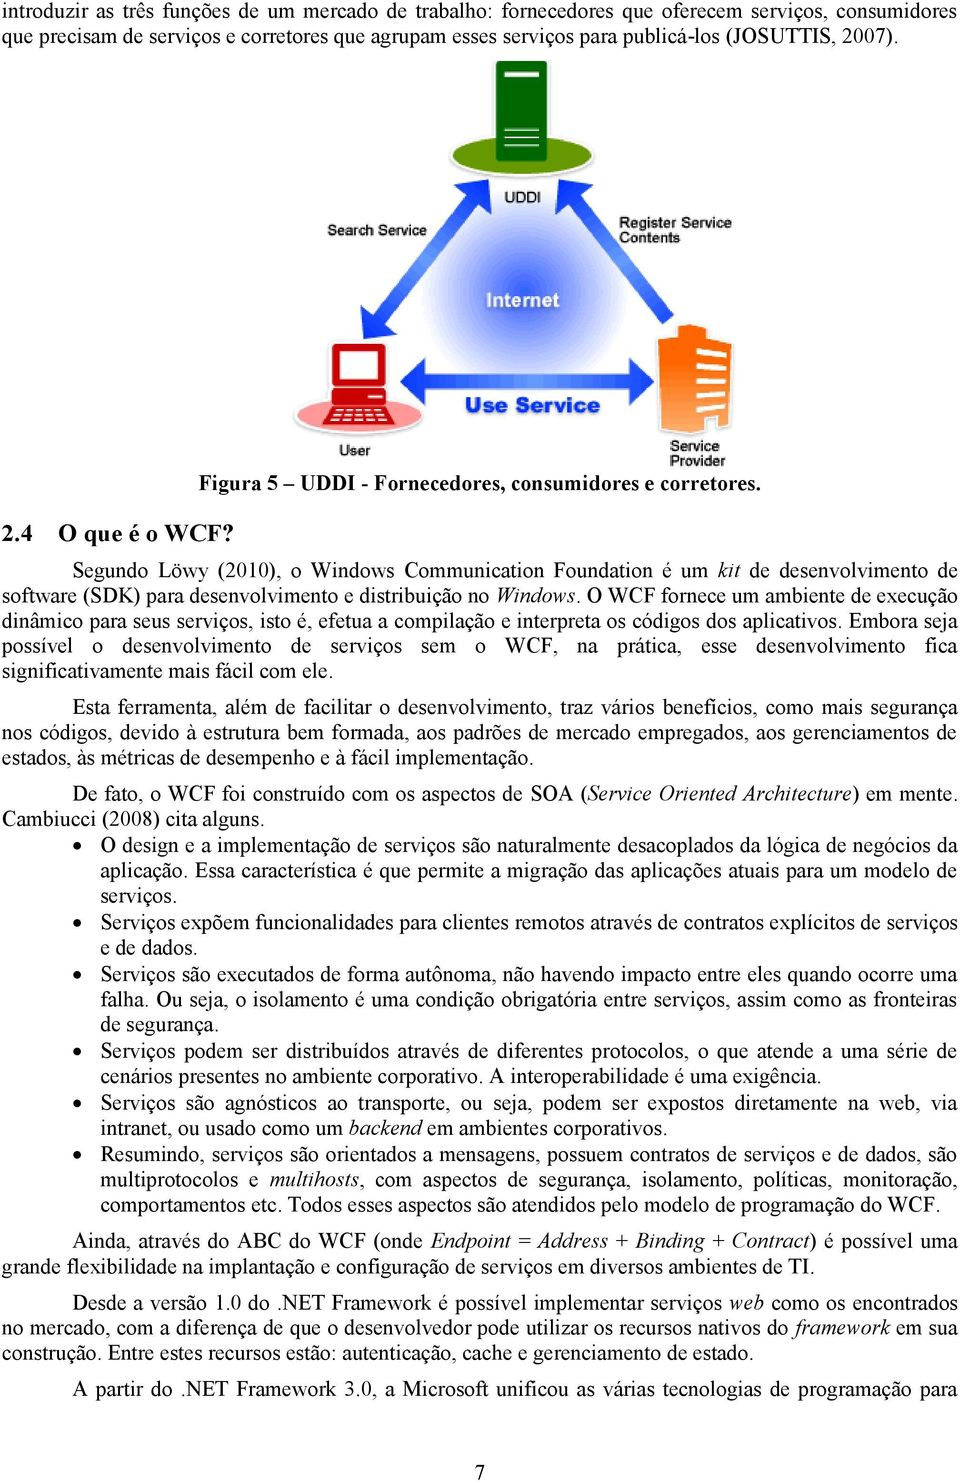 Segundo Löwy (2010), o Windows Communication Foundation é um kit de desenvolvimento de software (SDK) para desenvolvimento e distribuição no Windows.